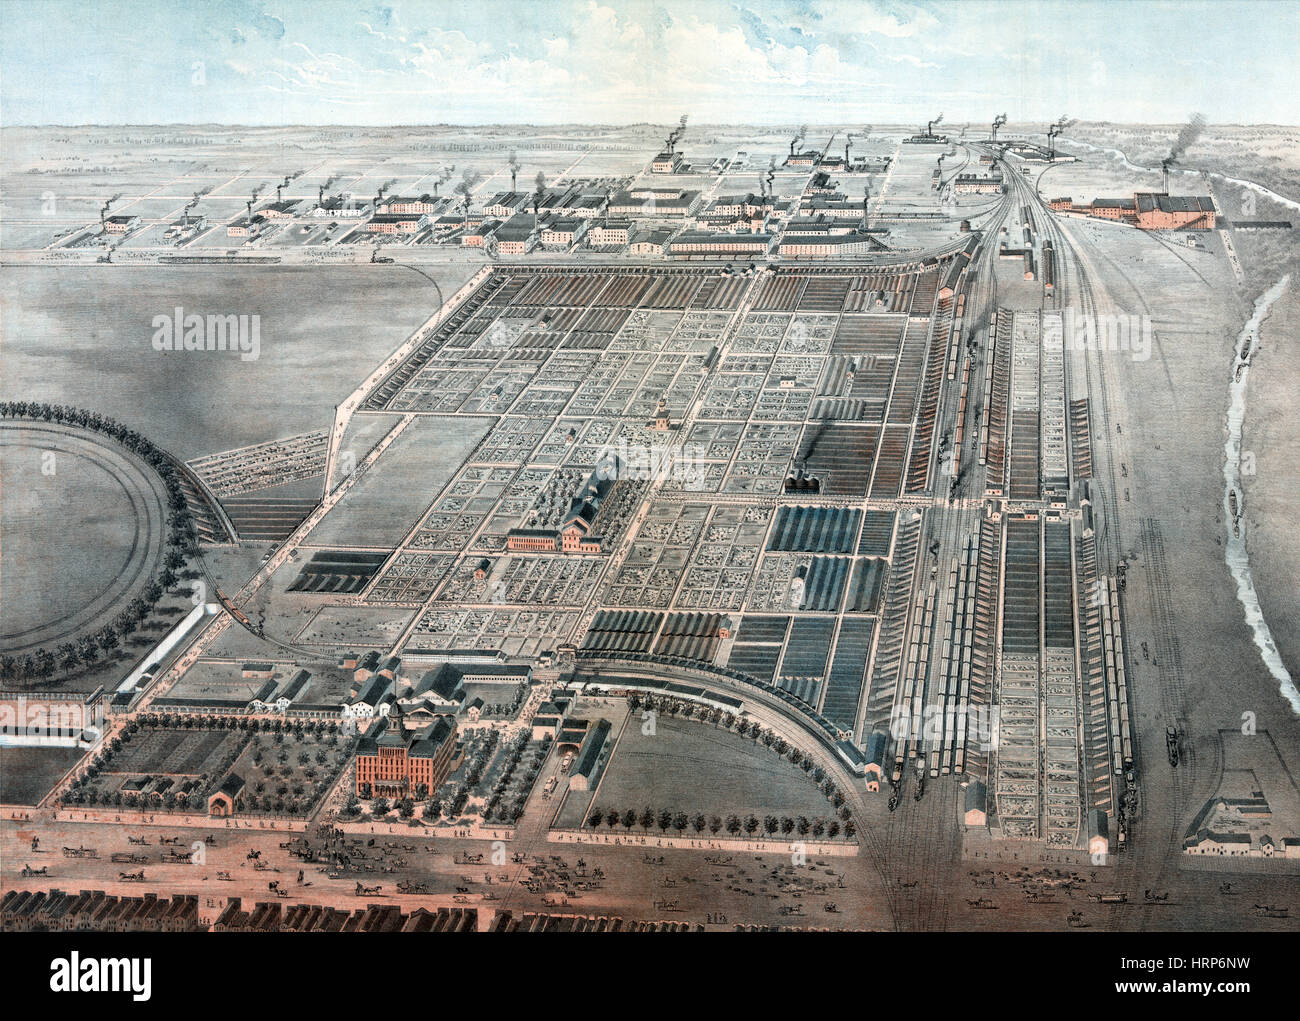 Chicago, Union Stock Yard, 1878 - Stock Image